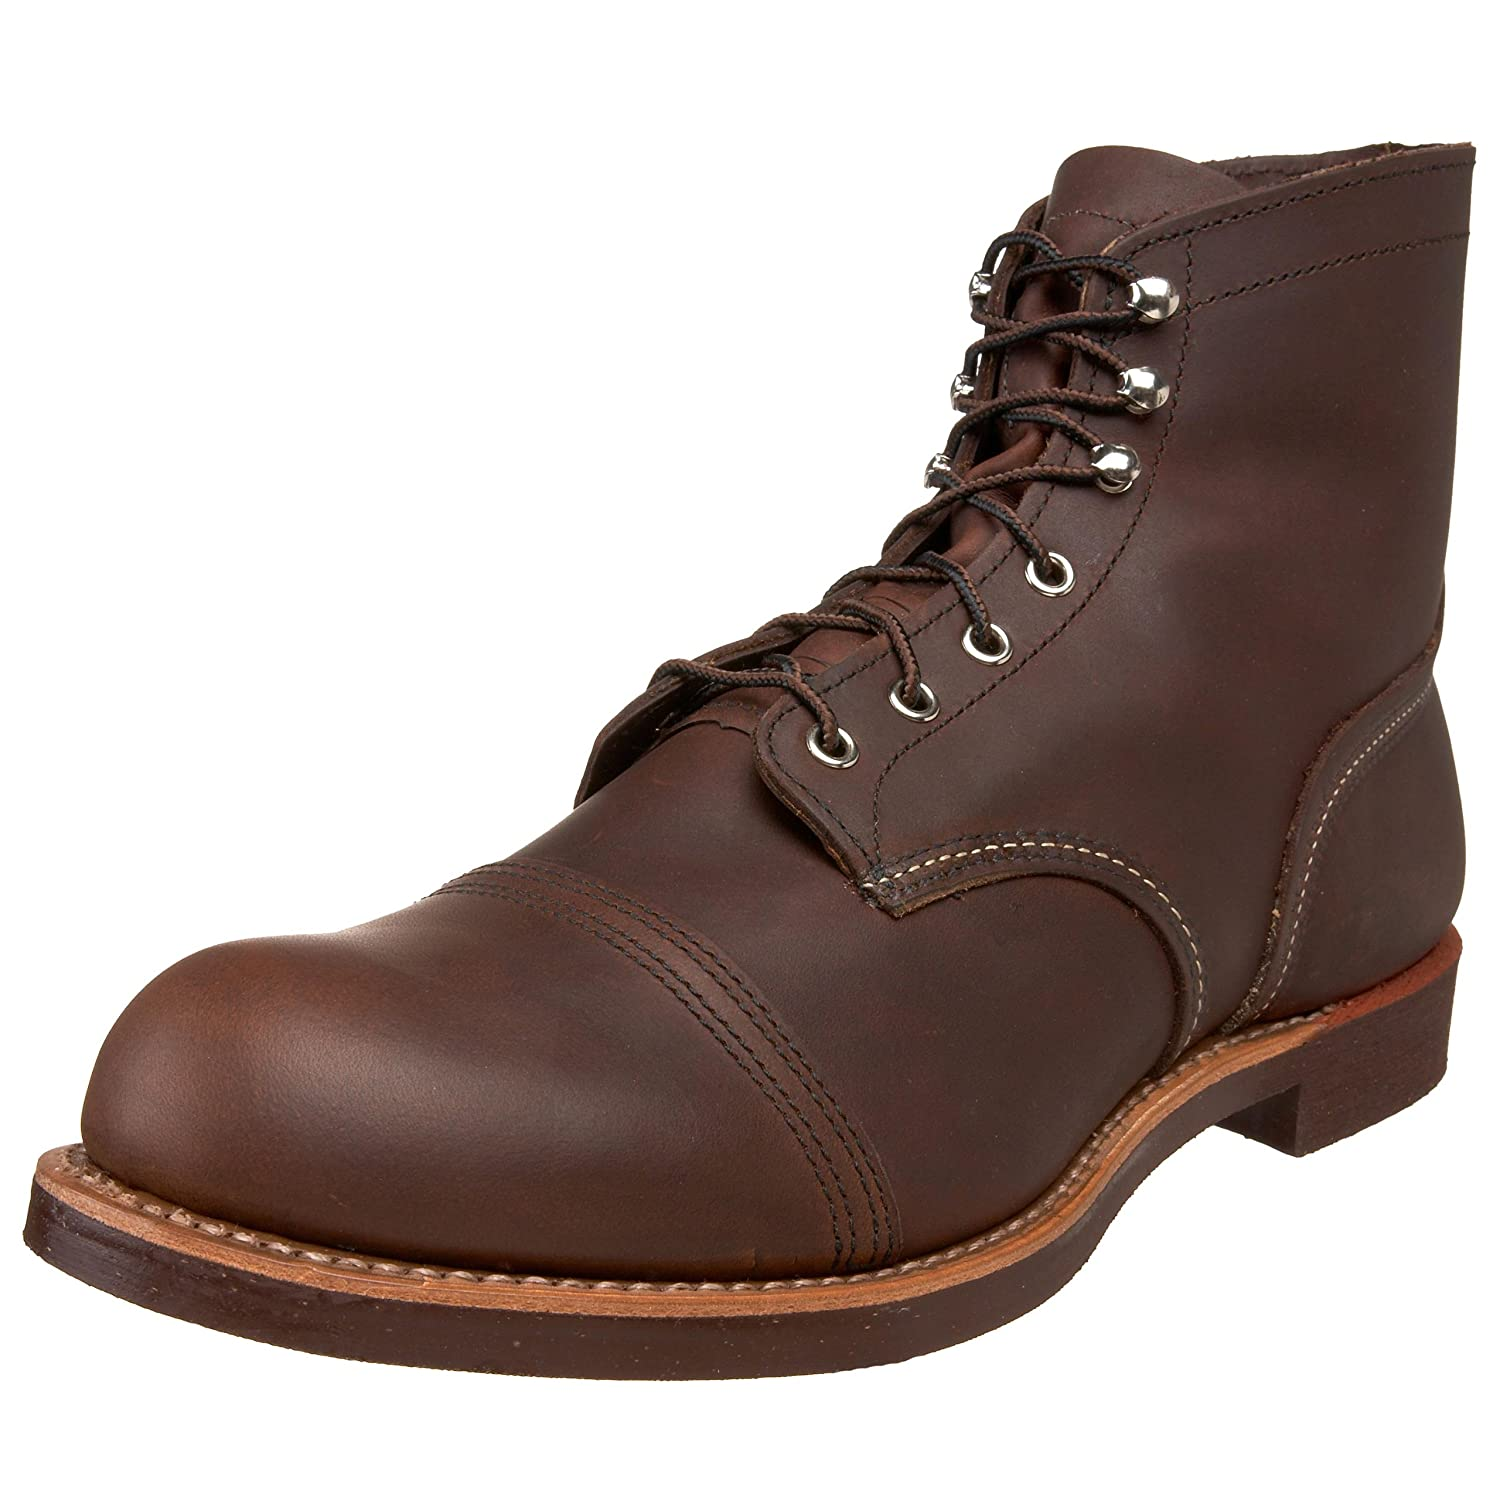 1920s Boardwalk Empire Shoes Red Wing Heritage Iron Ranger 6-Inch Boot $239.96 AT vintagedancer.com